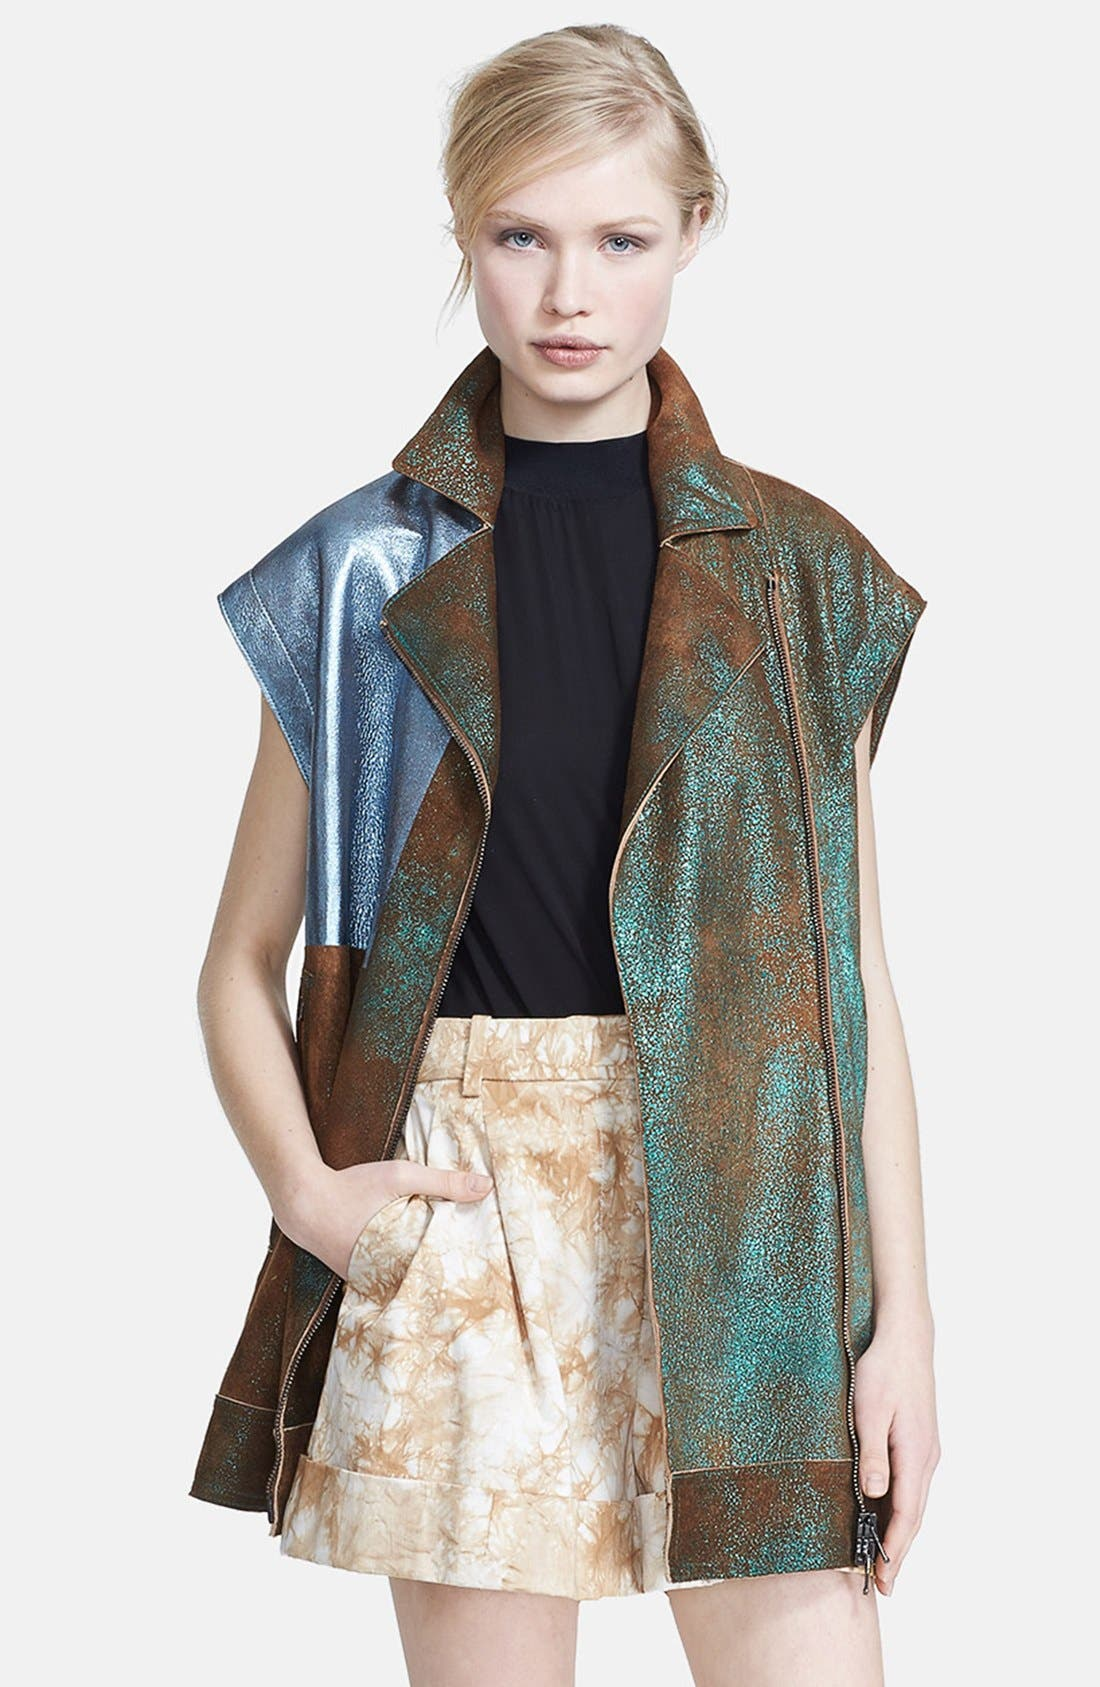 Main Image - 3.1 Phillip Lim Foiled Moto Leather Vest